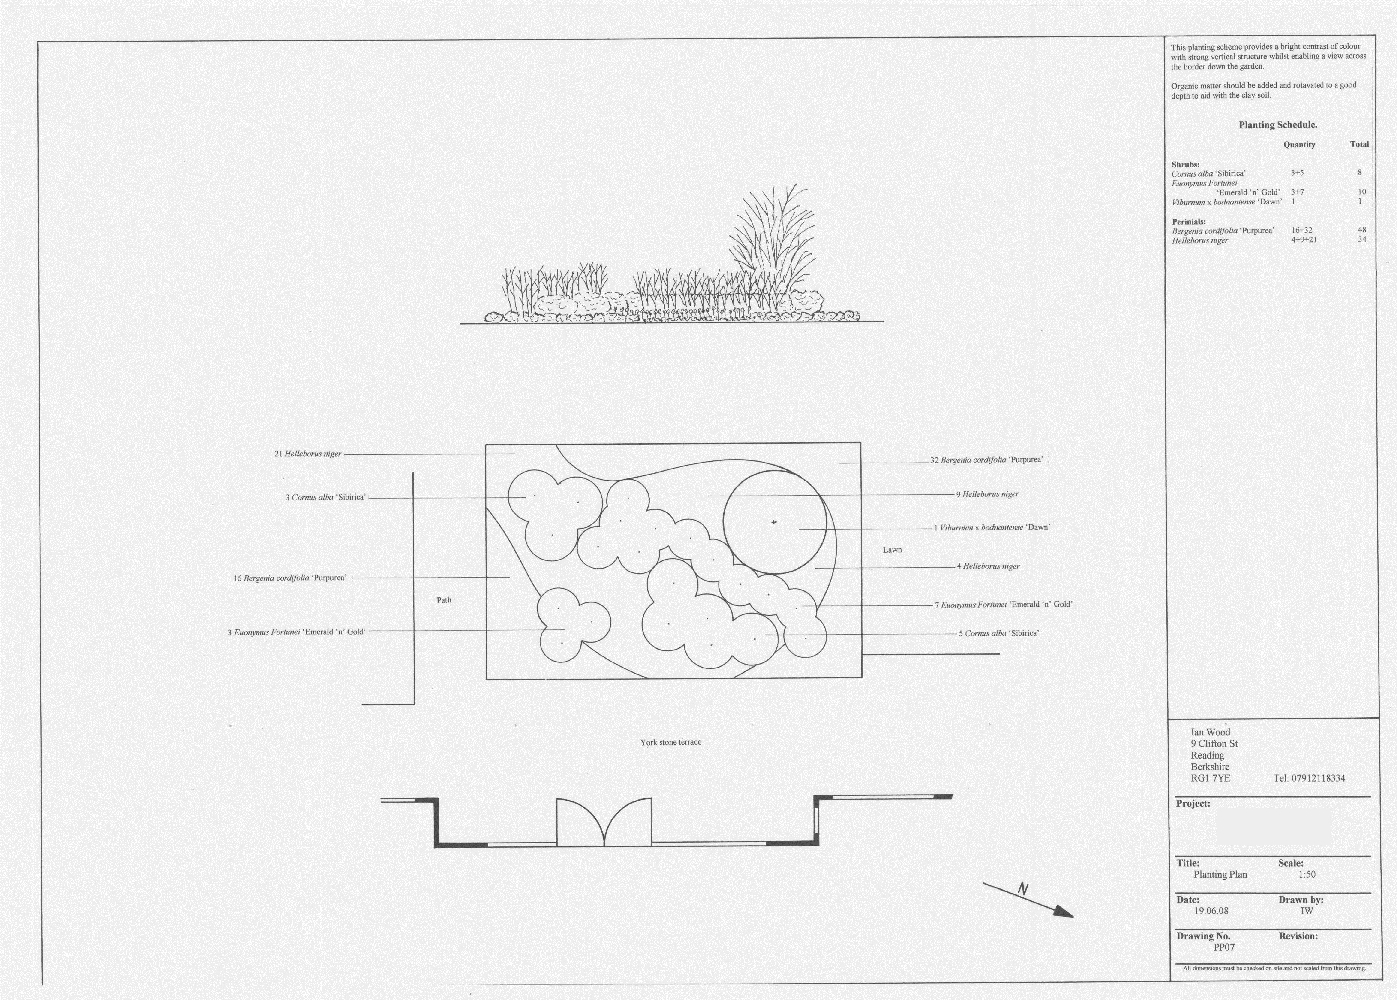 Planting schemes great scapes landscape design for Garden design planting schemes